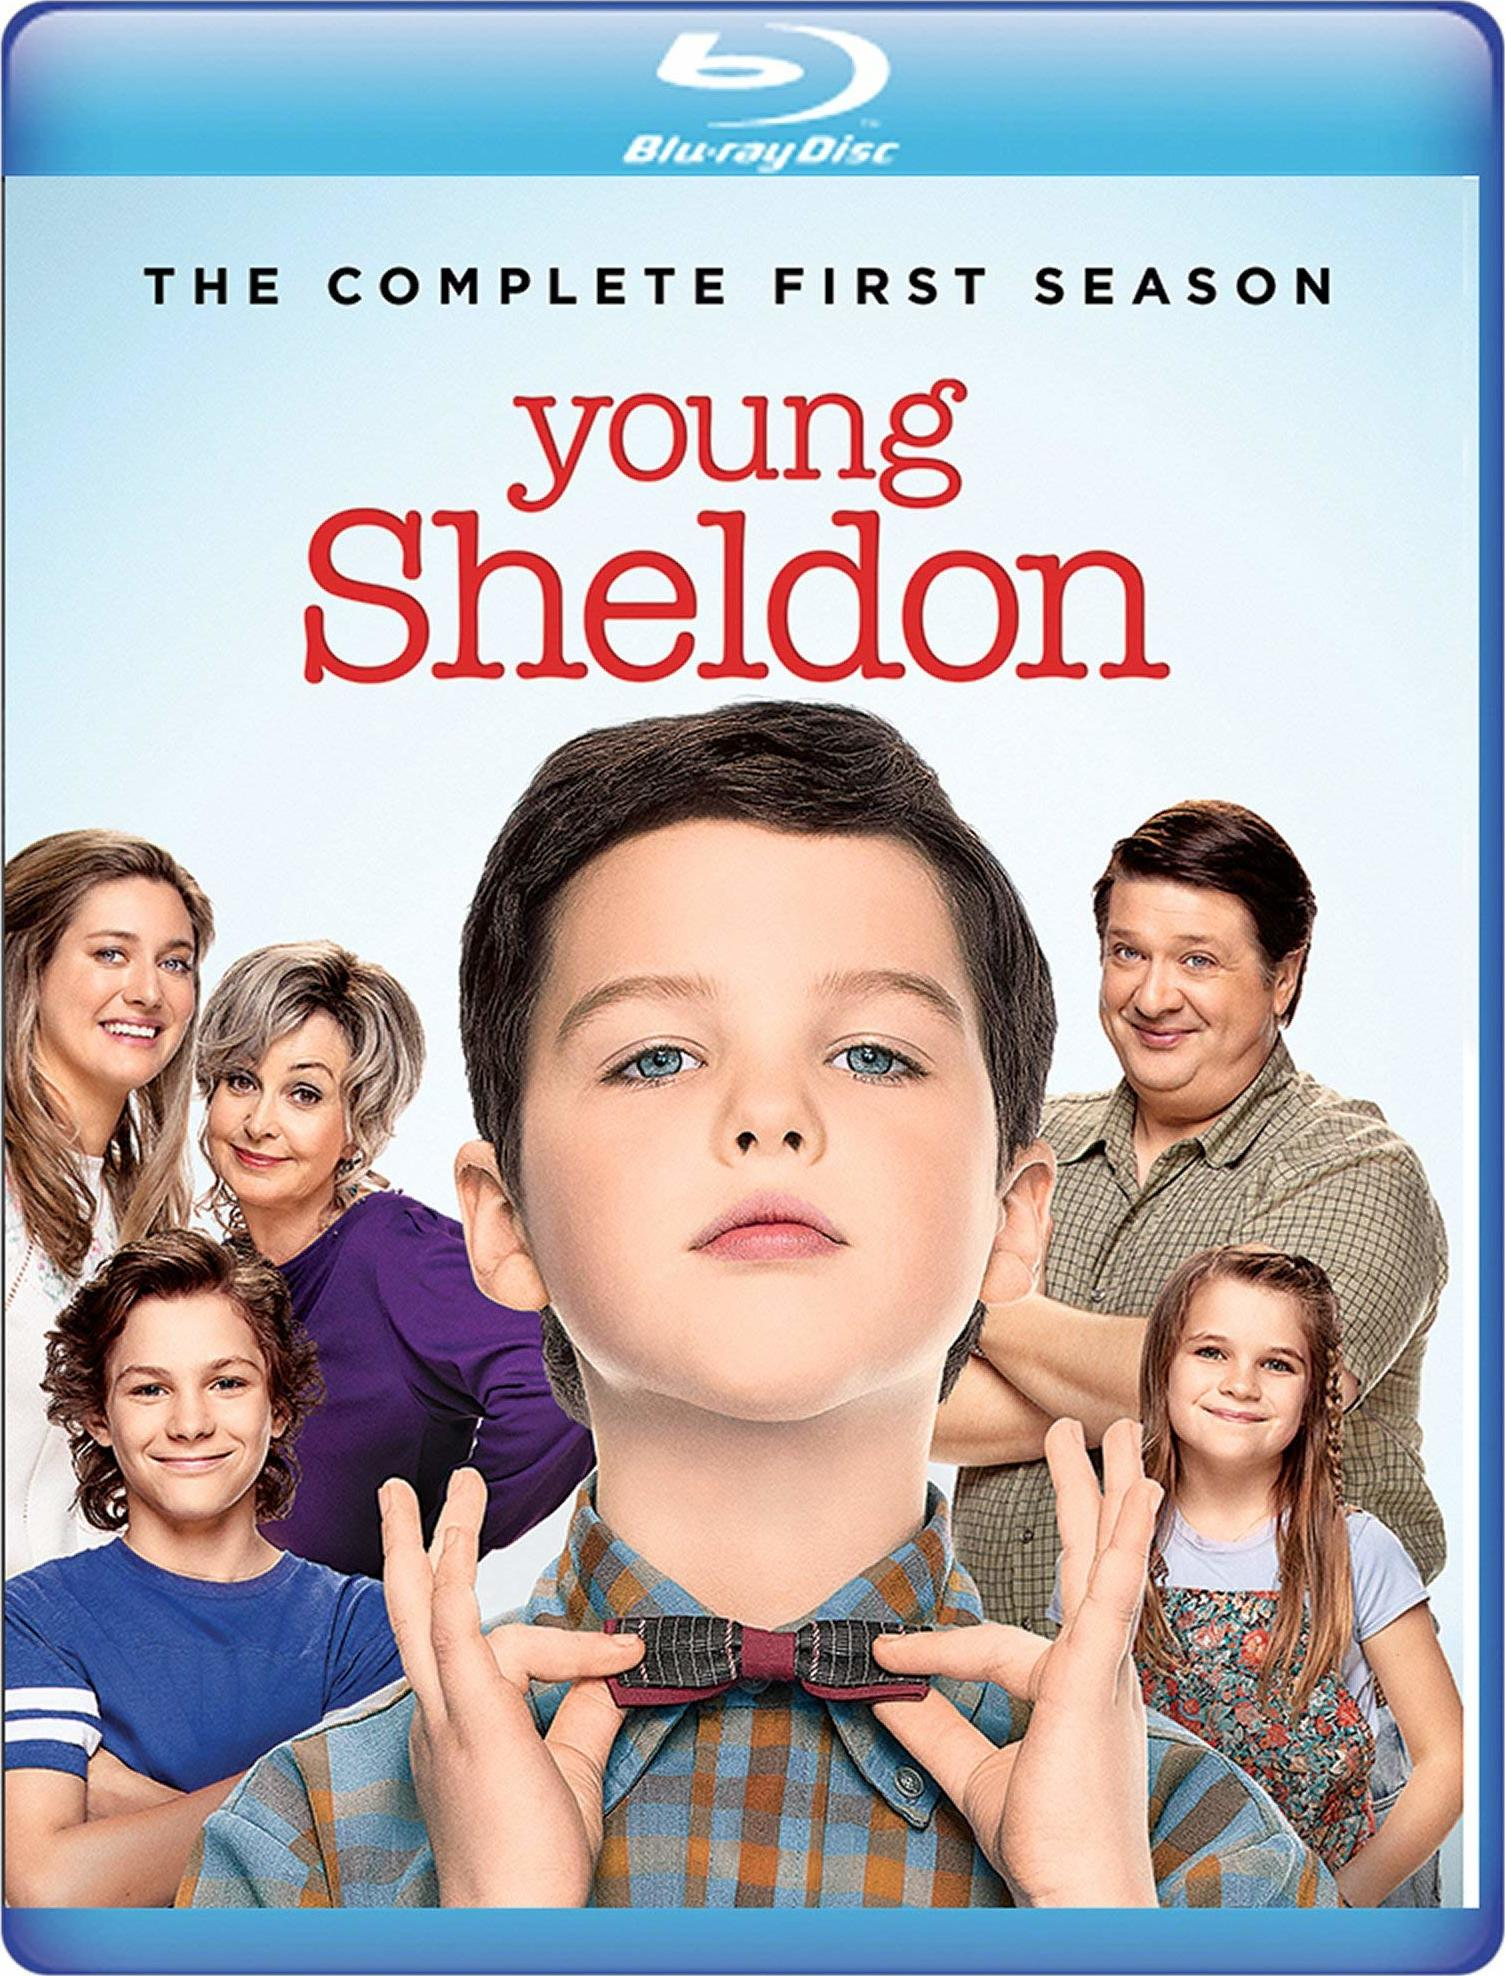 Young Sheldon: The Complete First Season (Warner Archive Collection)(Blu-ray)(Region Free)